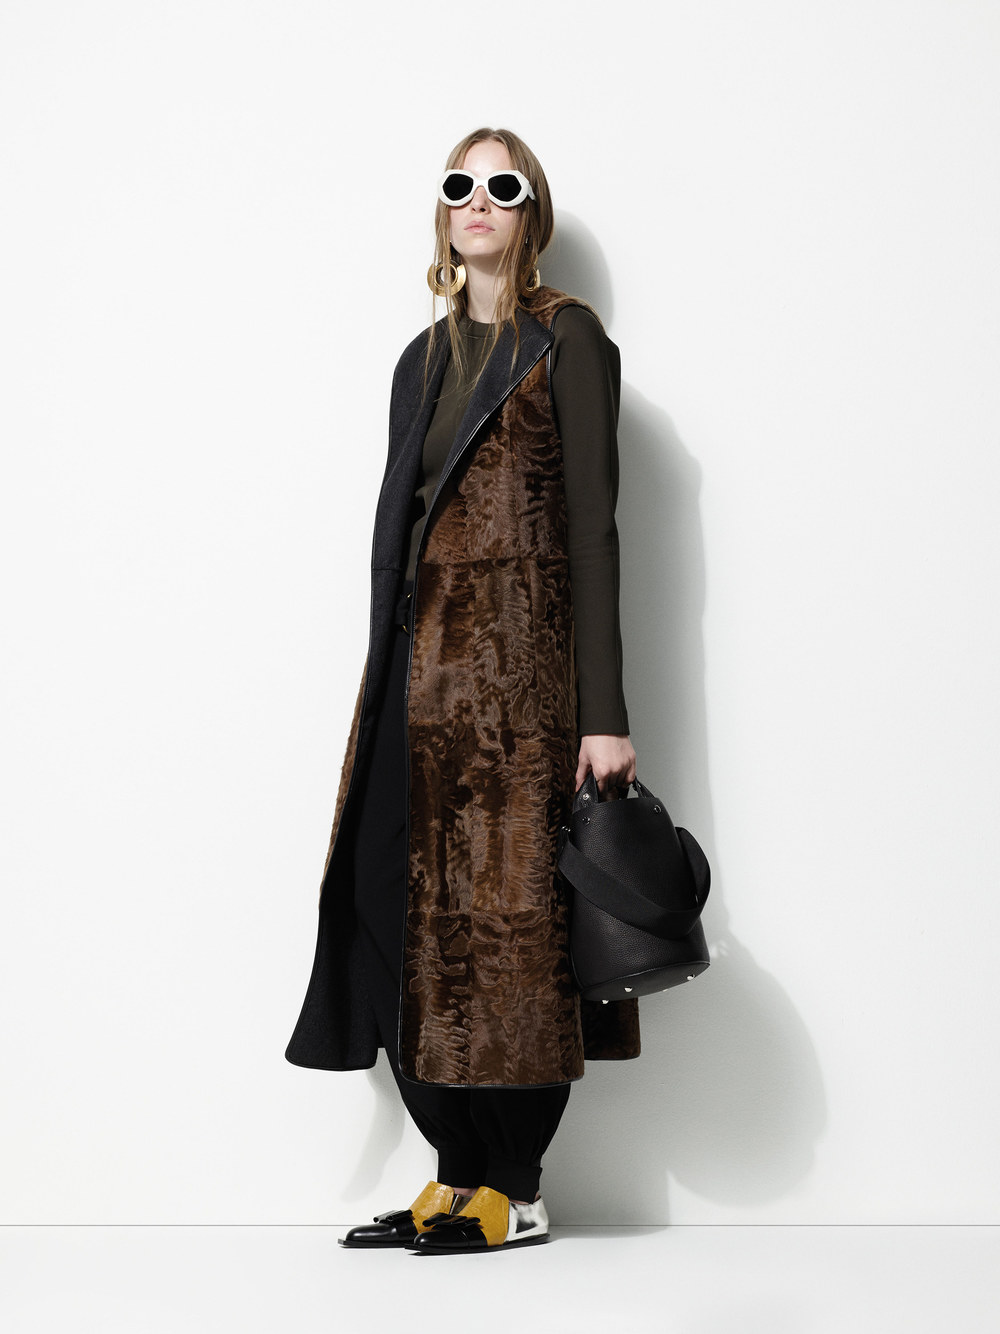 marni-pre-fall-2016-lookbook-15.jpg